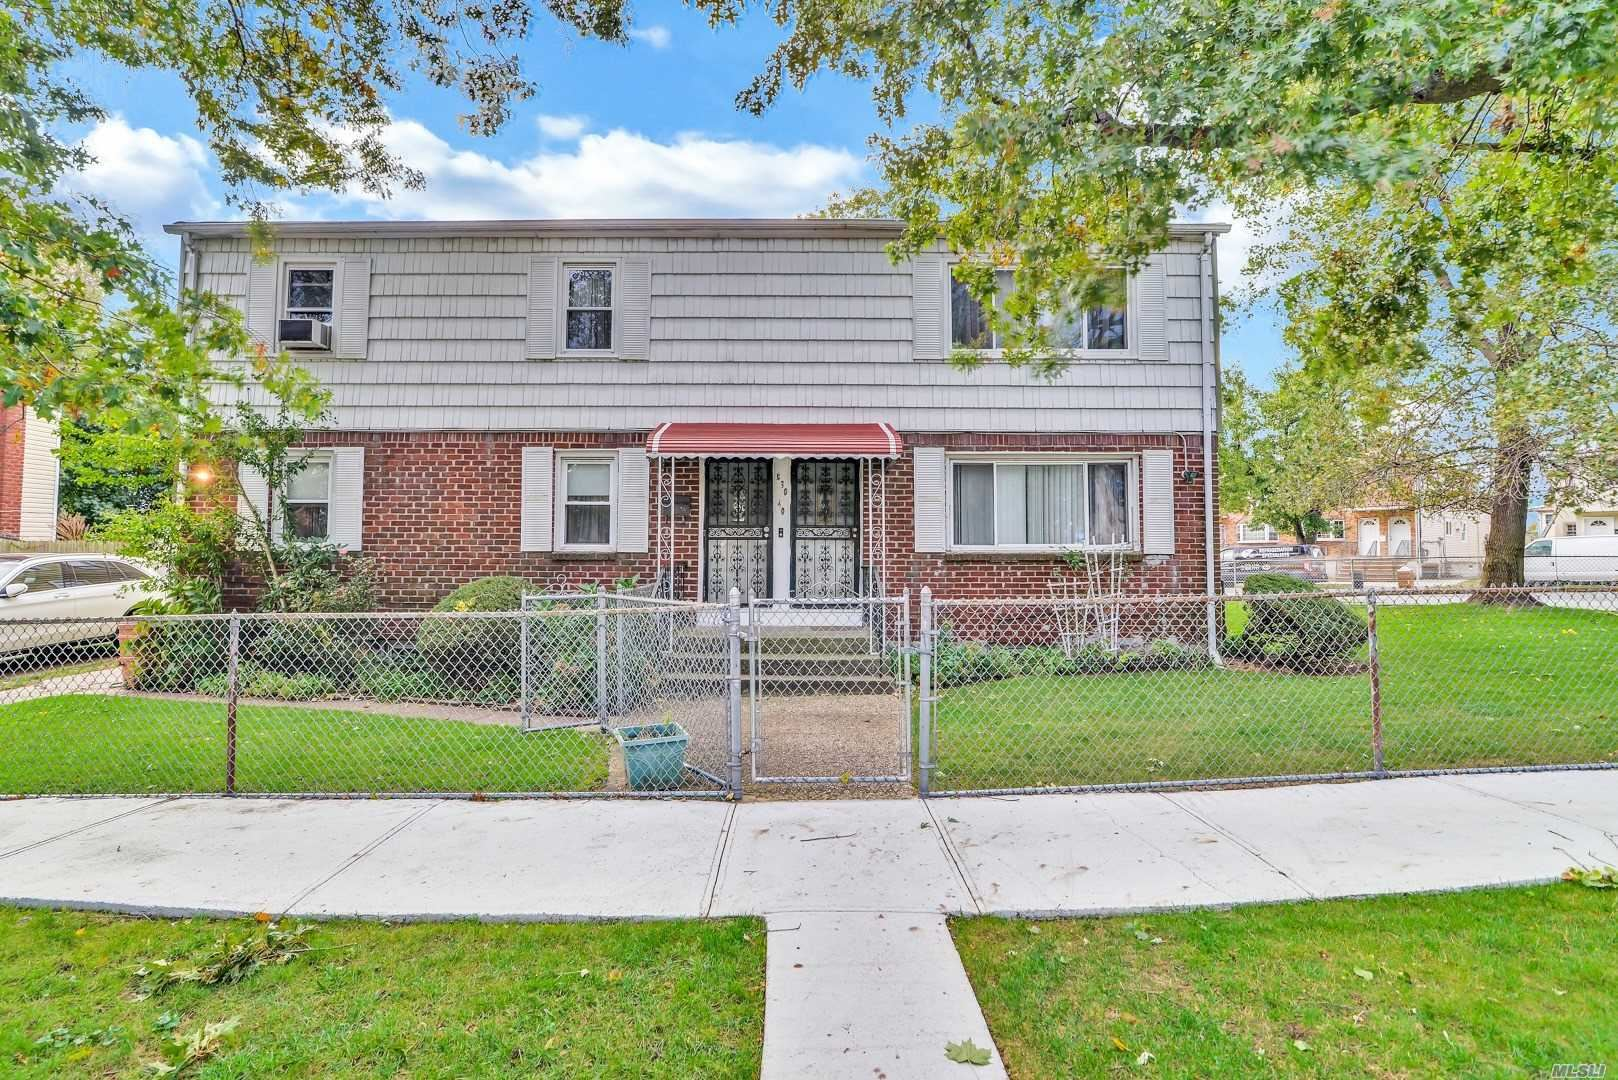 230-40 Edgewood Avenue, Laurelton, NY 11413 - MLS#: 3213602